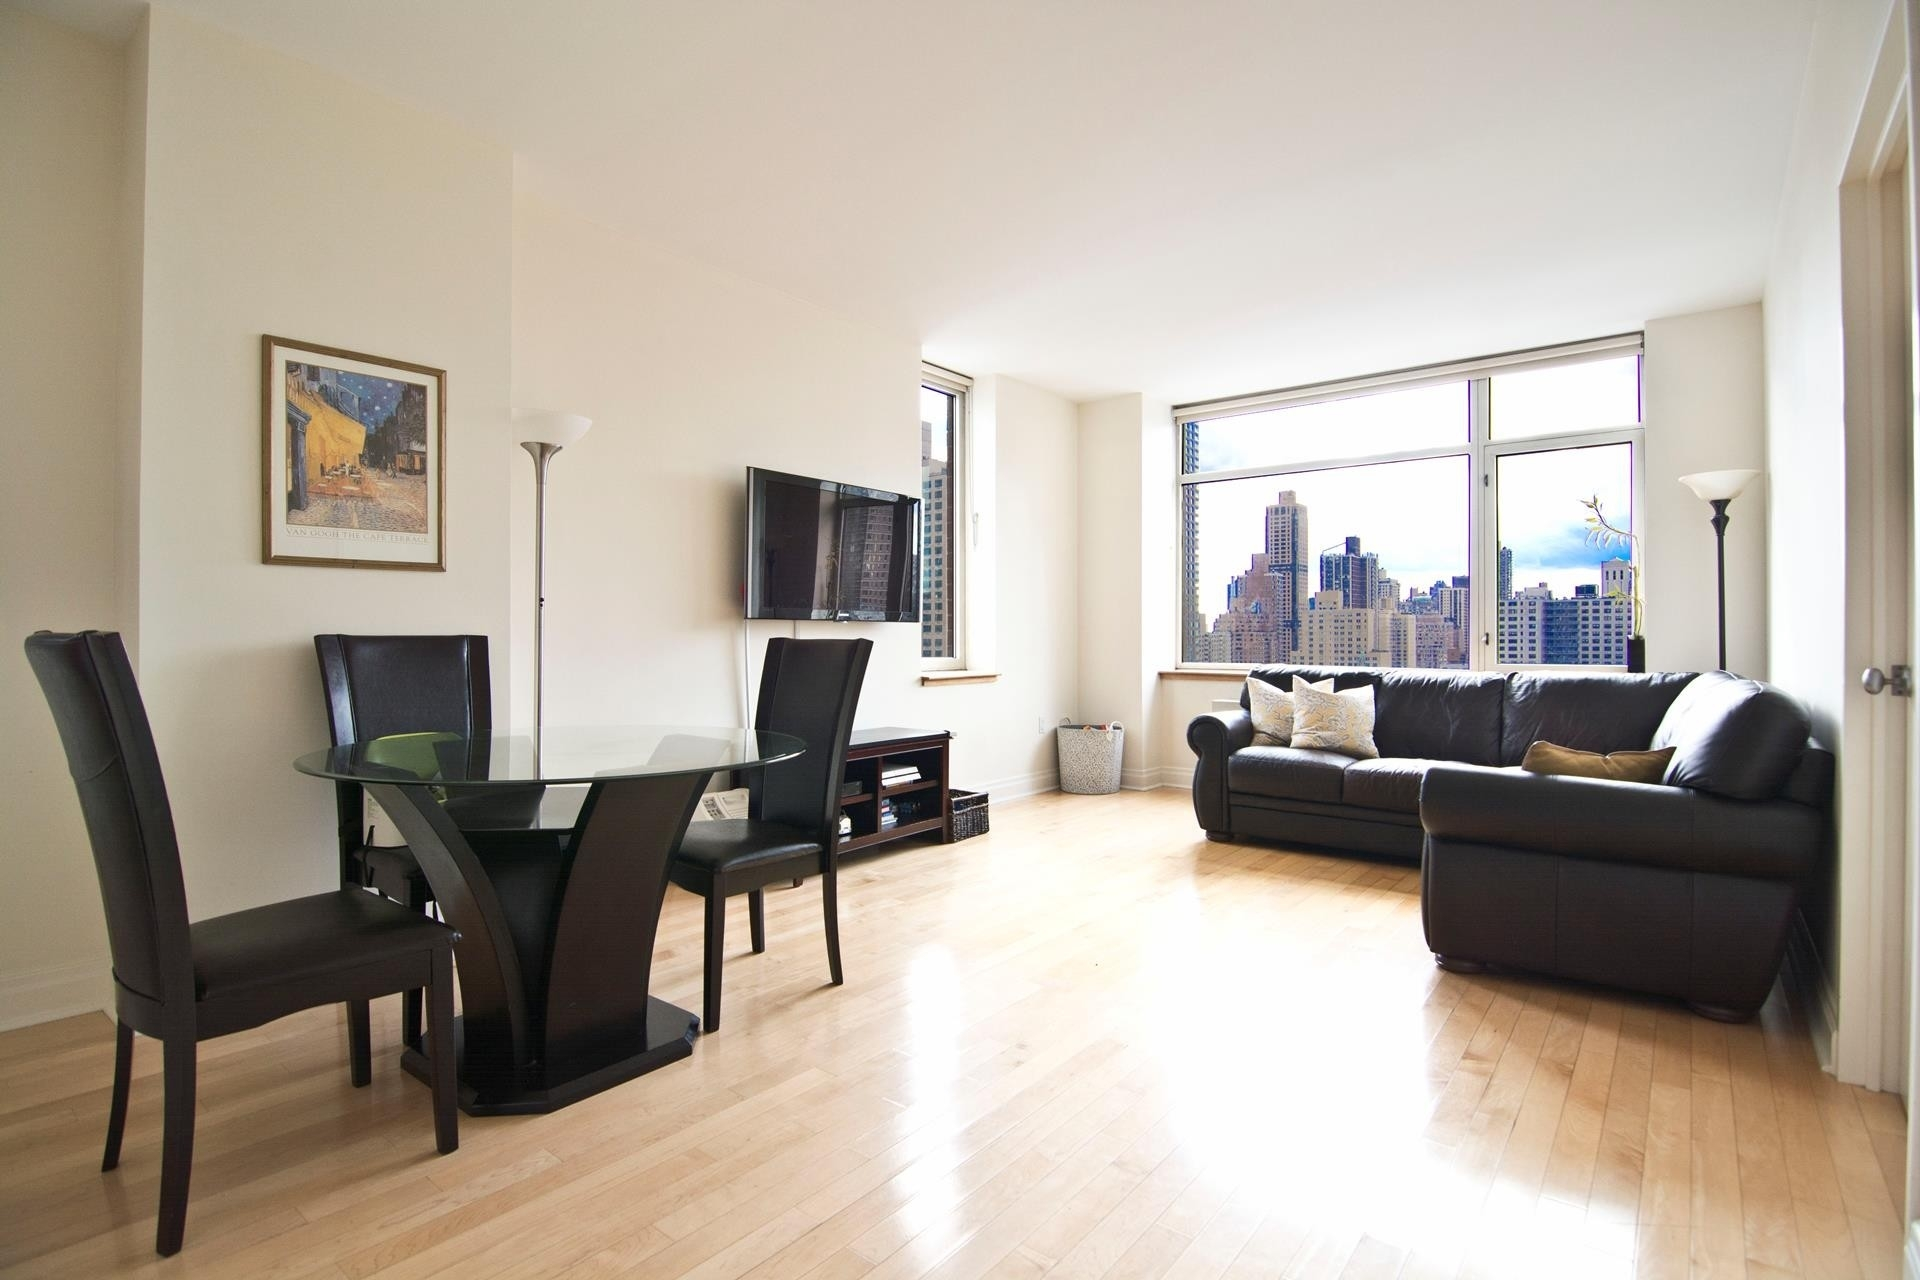 Condominium at Chartwell House, 1760 Second Avenue, 20B Yorkville, New York, NY 10128